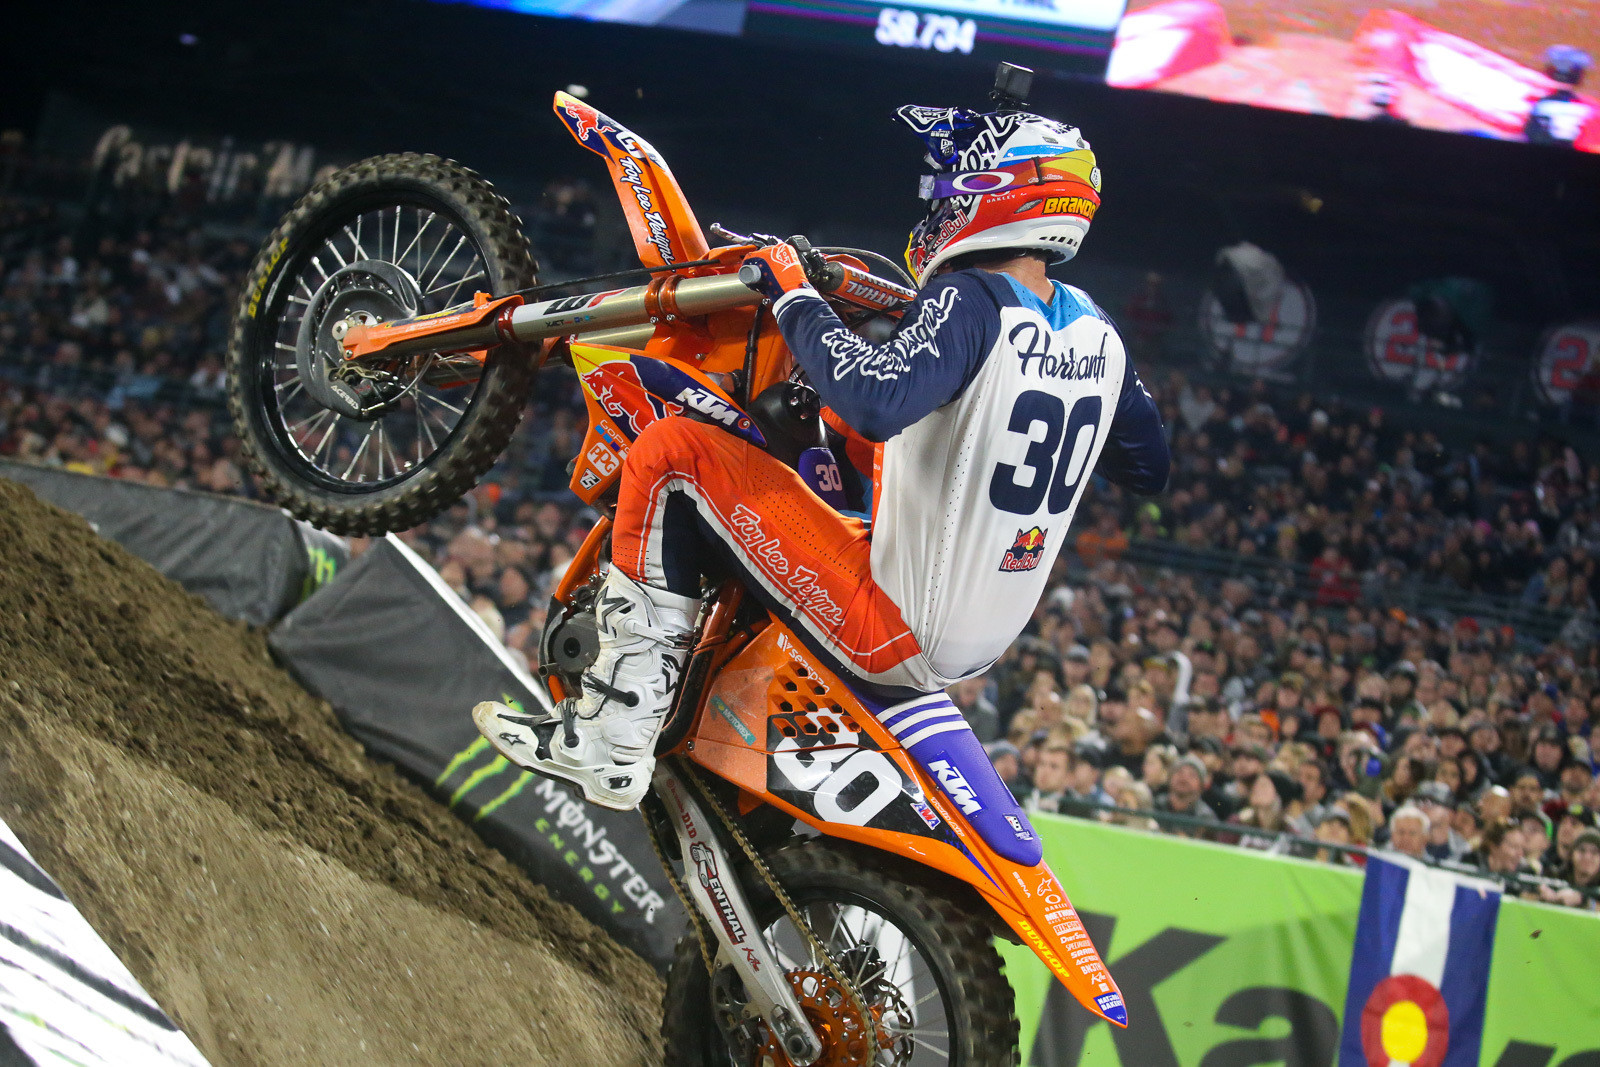 On the 250 side, Brandon Hartranft was the big mover, jumping up six spots.